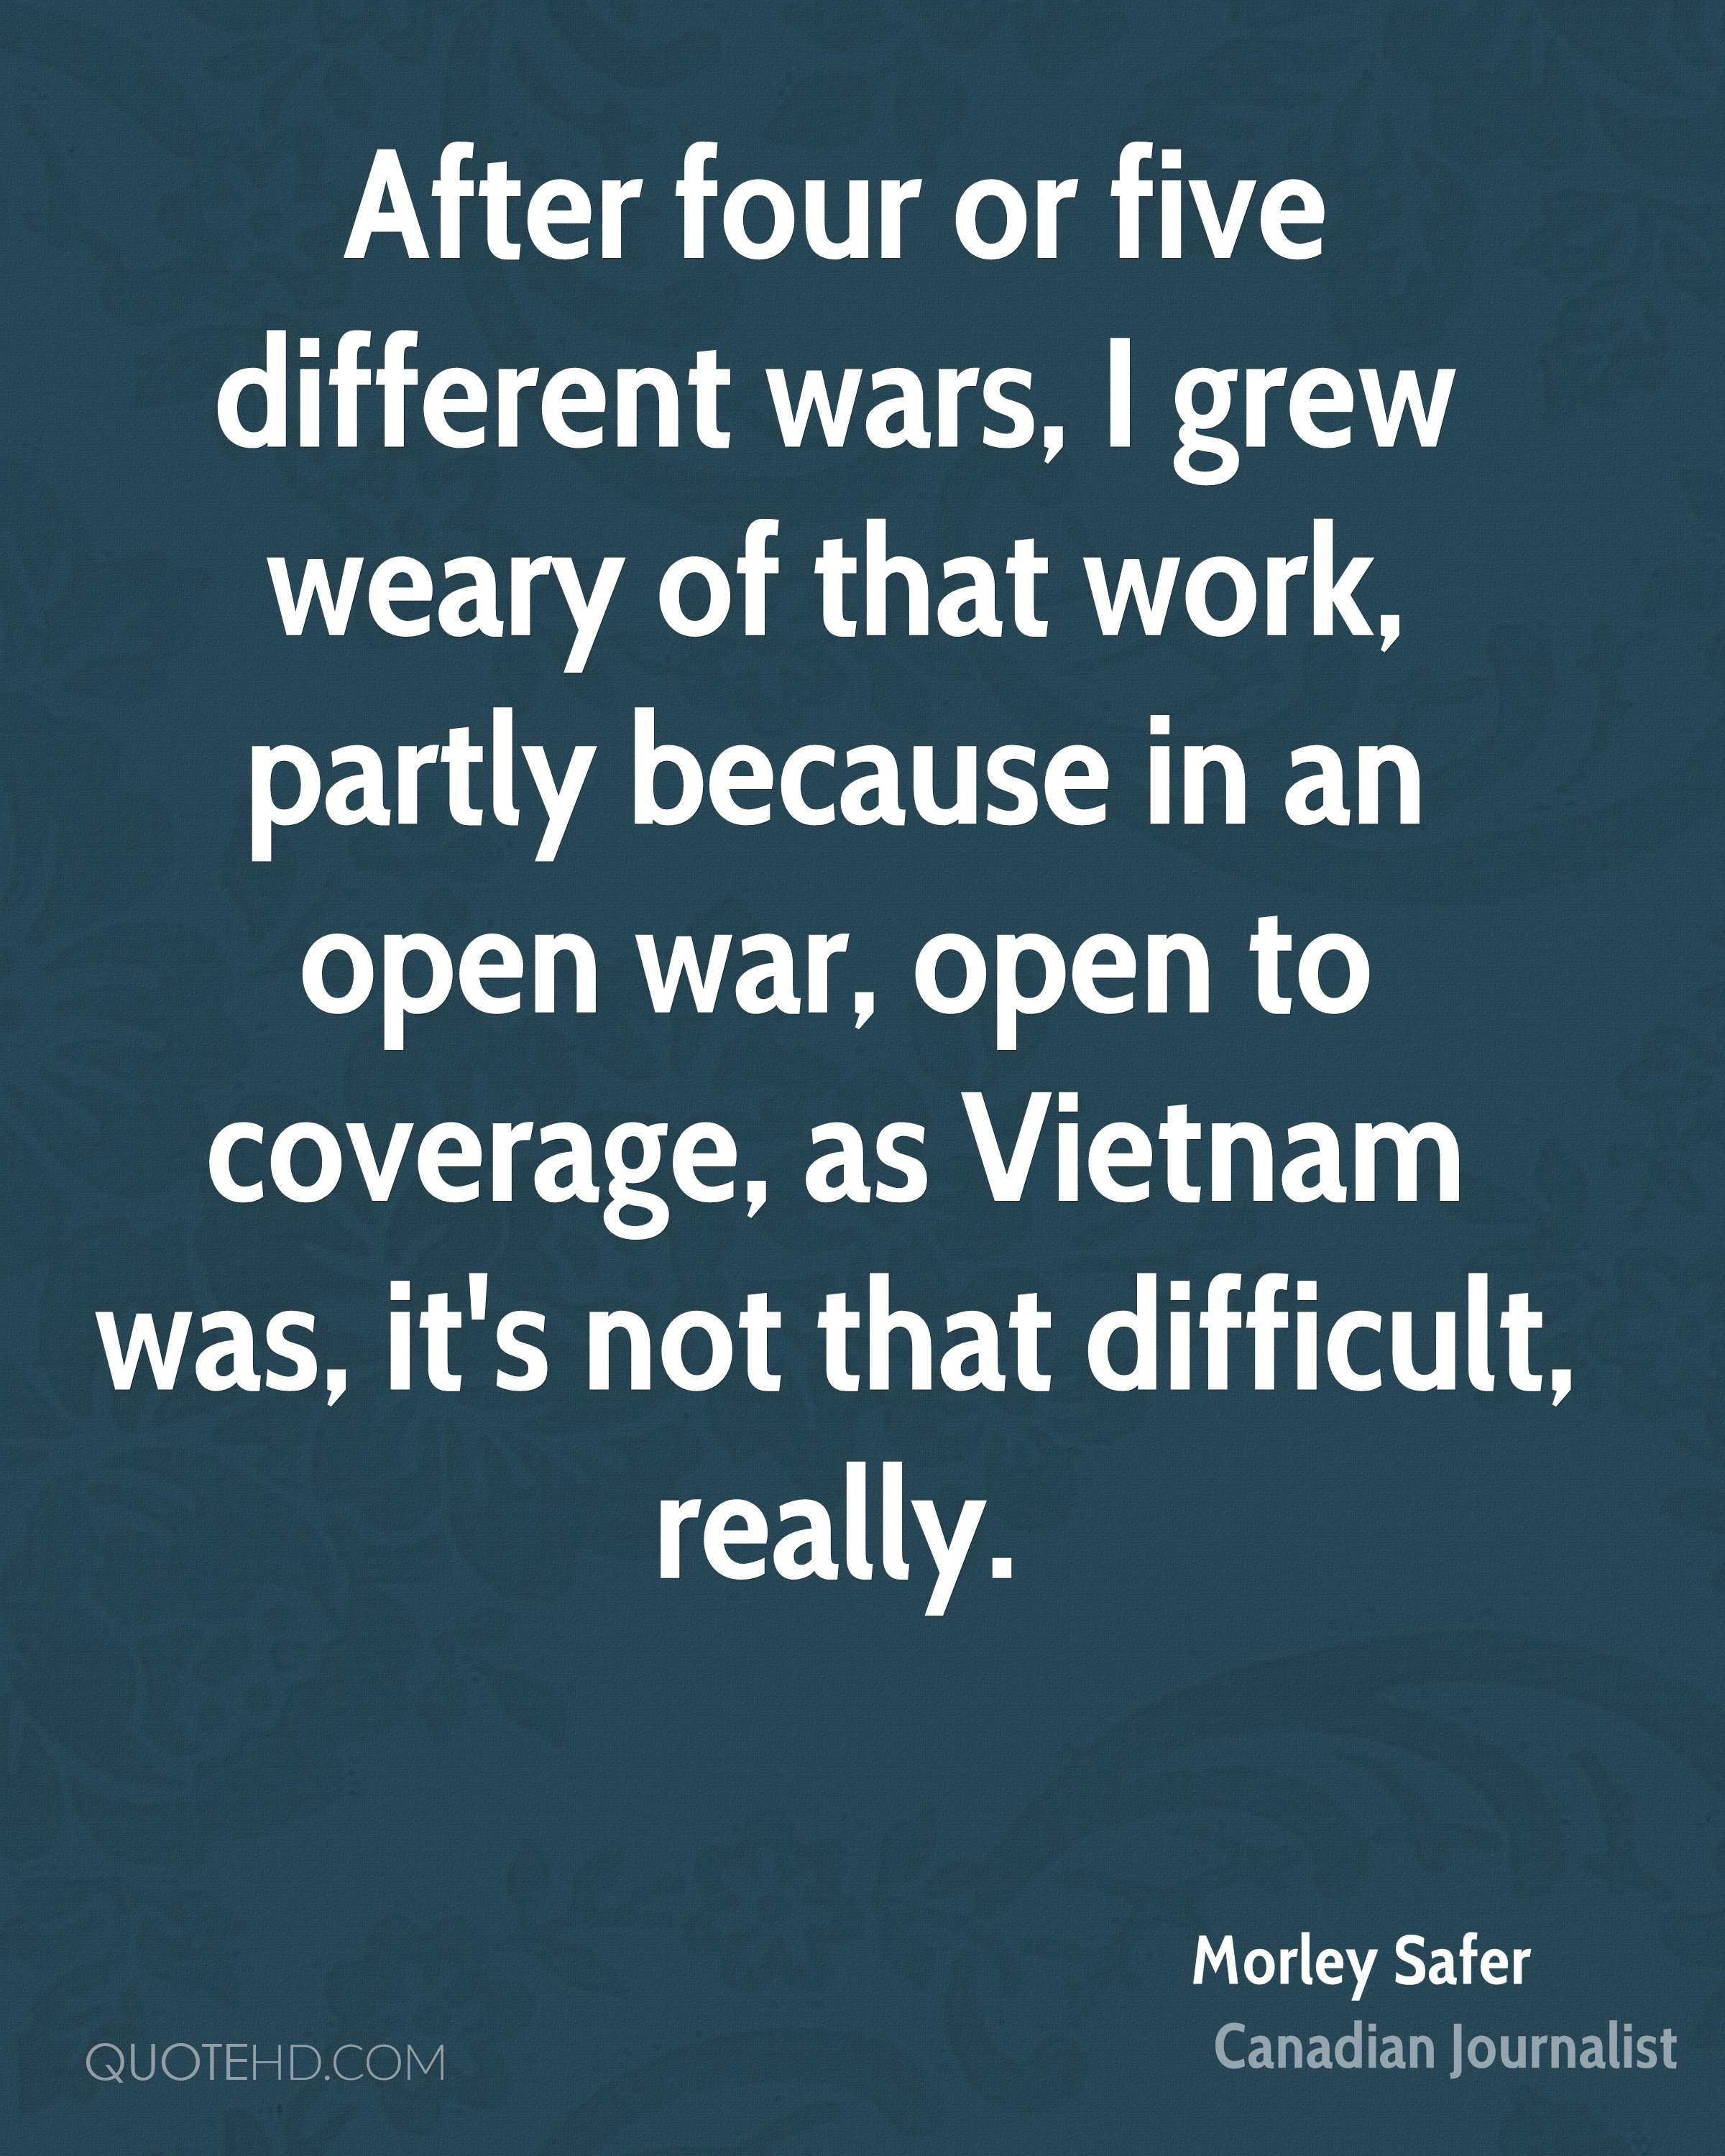 After four or five different wars, I grew weary of that work, partly because in an open war, open to coverage, as Vietnam was, it's not that difficult, really.